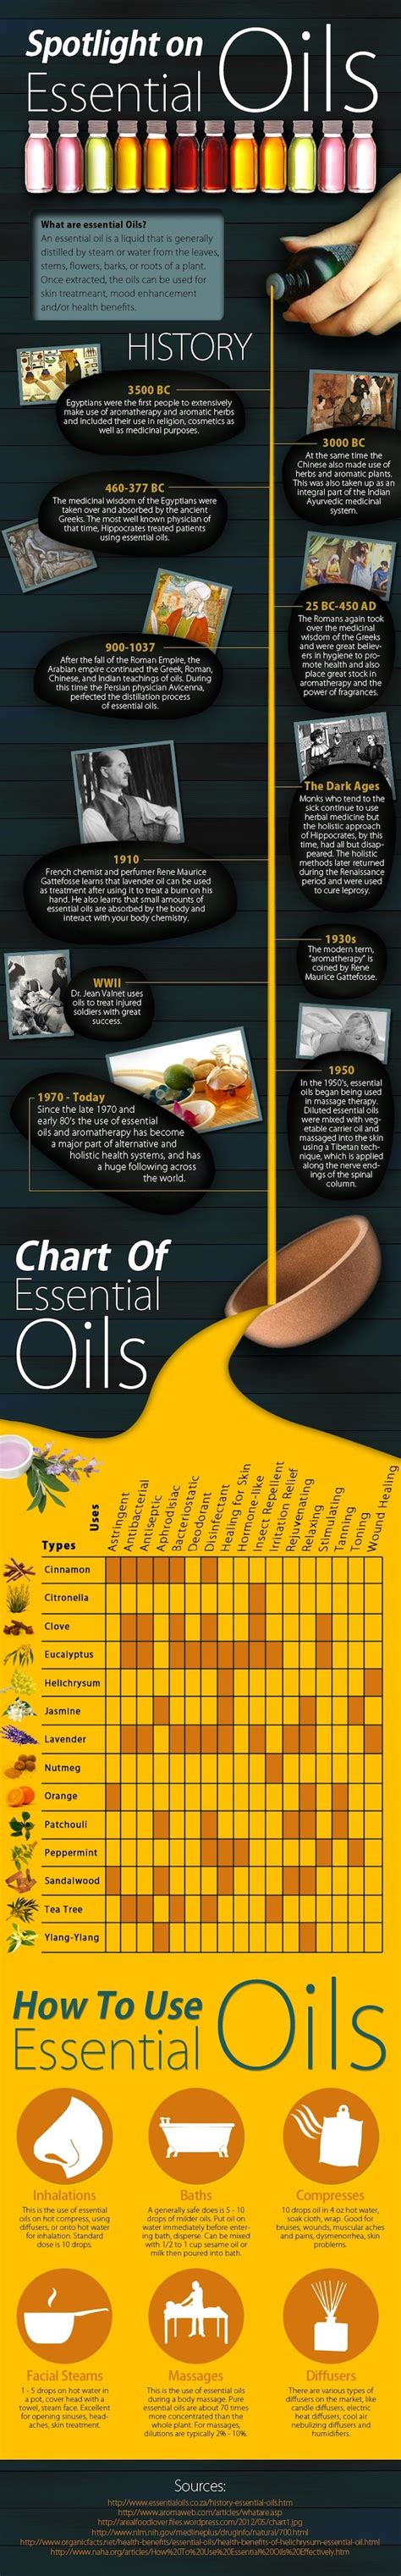 The History, Medicinal Uses & Science Behind The Use Of